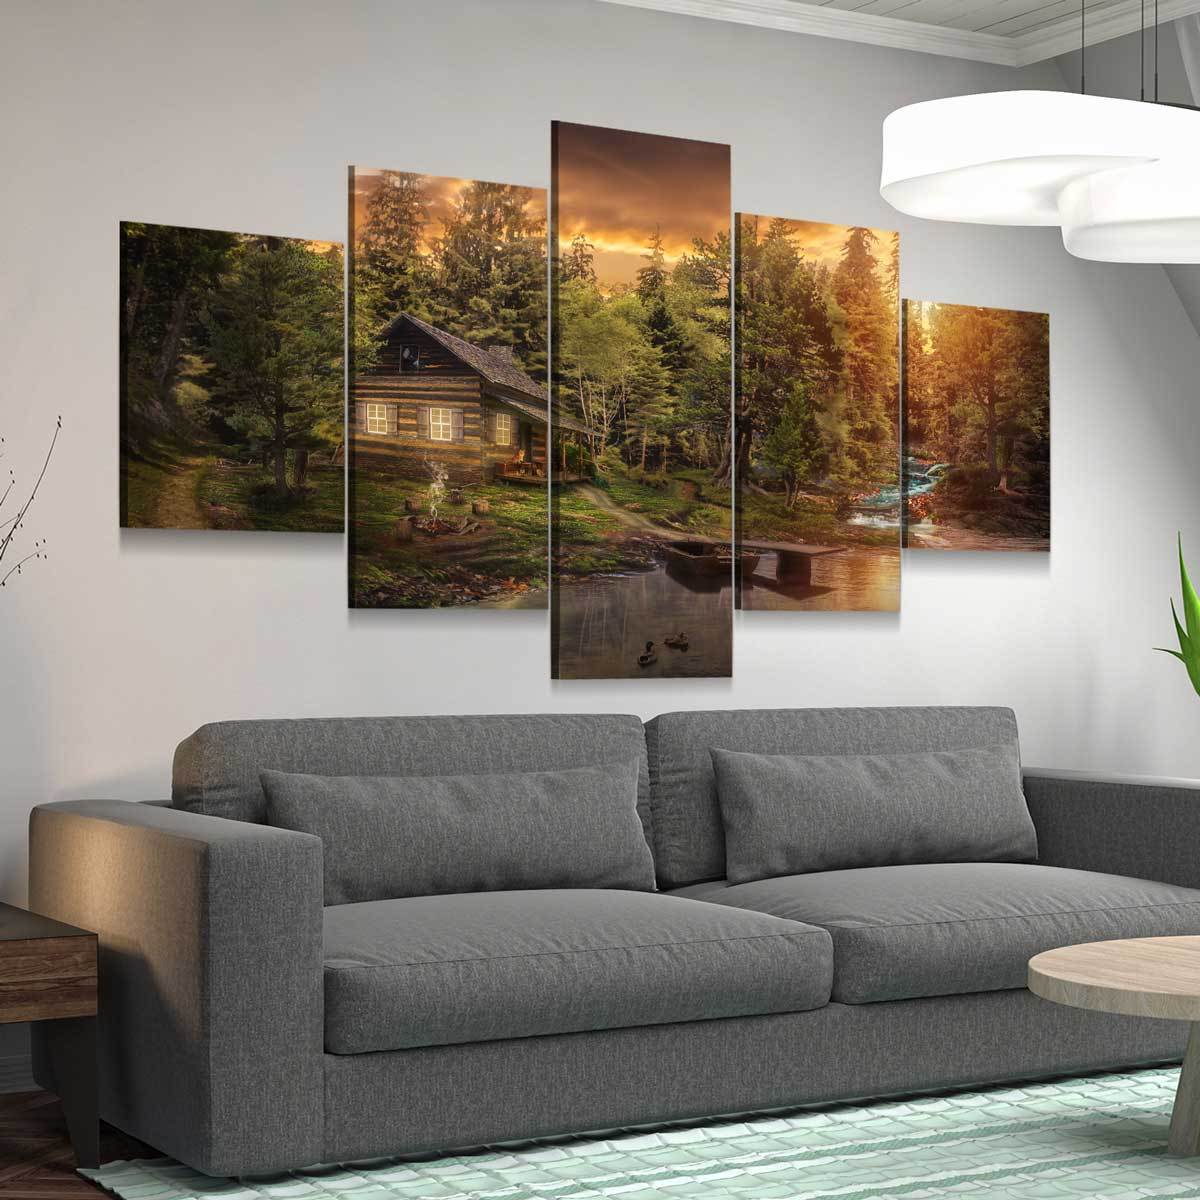 Cabin In The Woods 5 panel canvas wall art